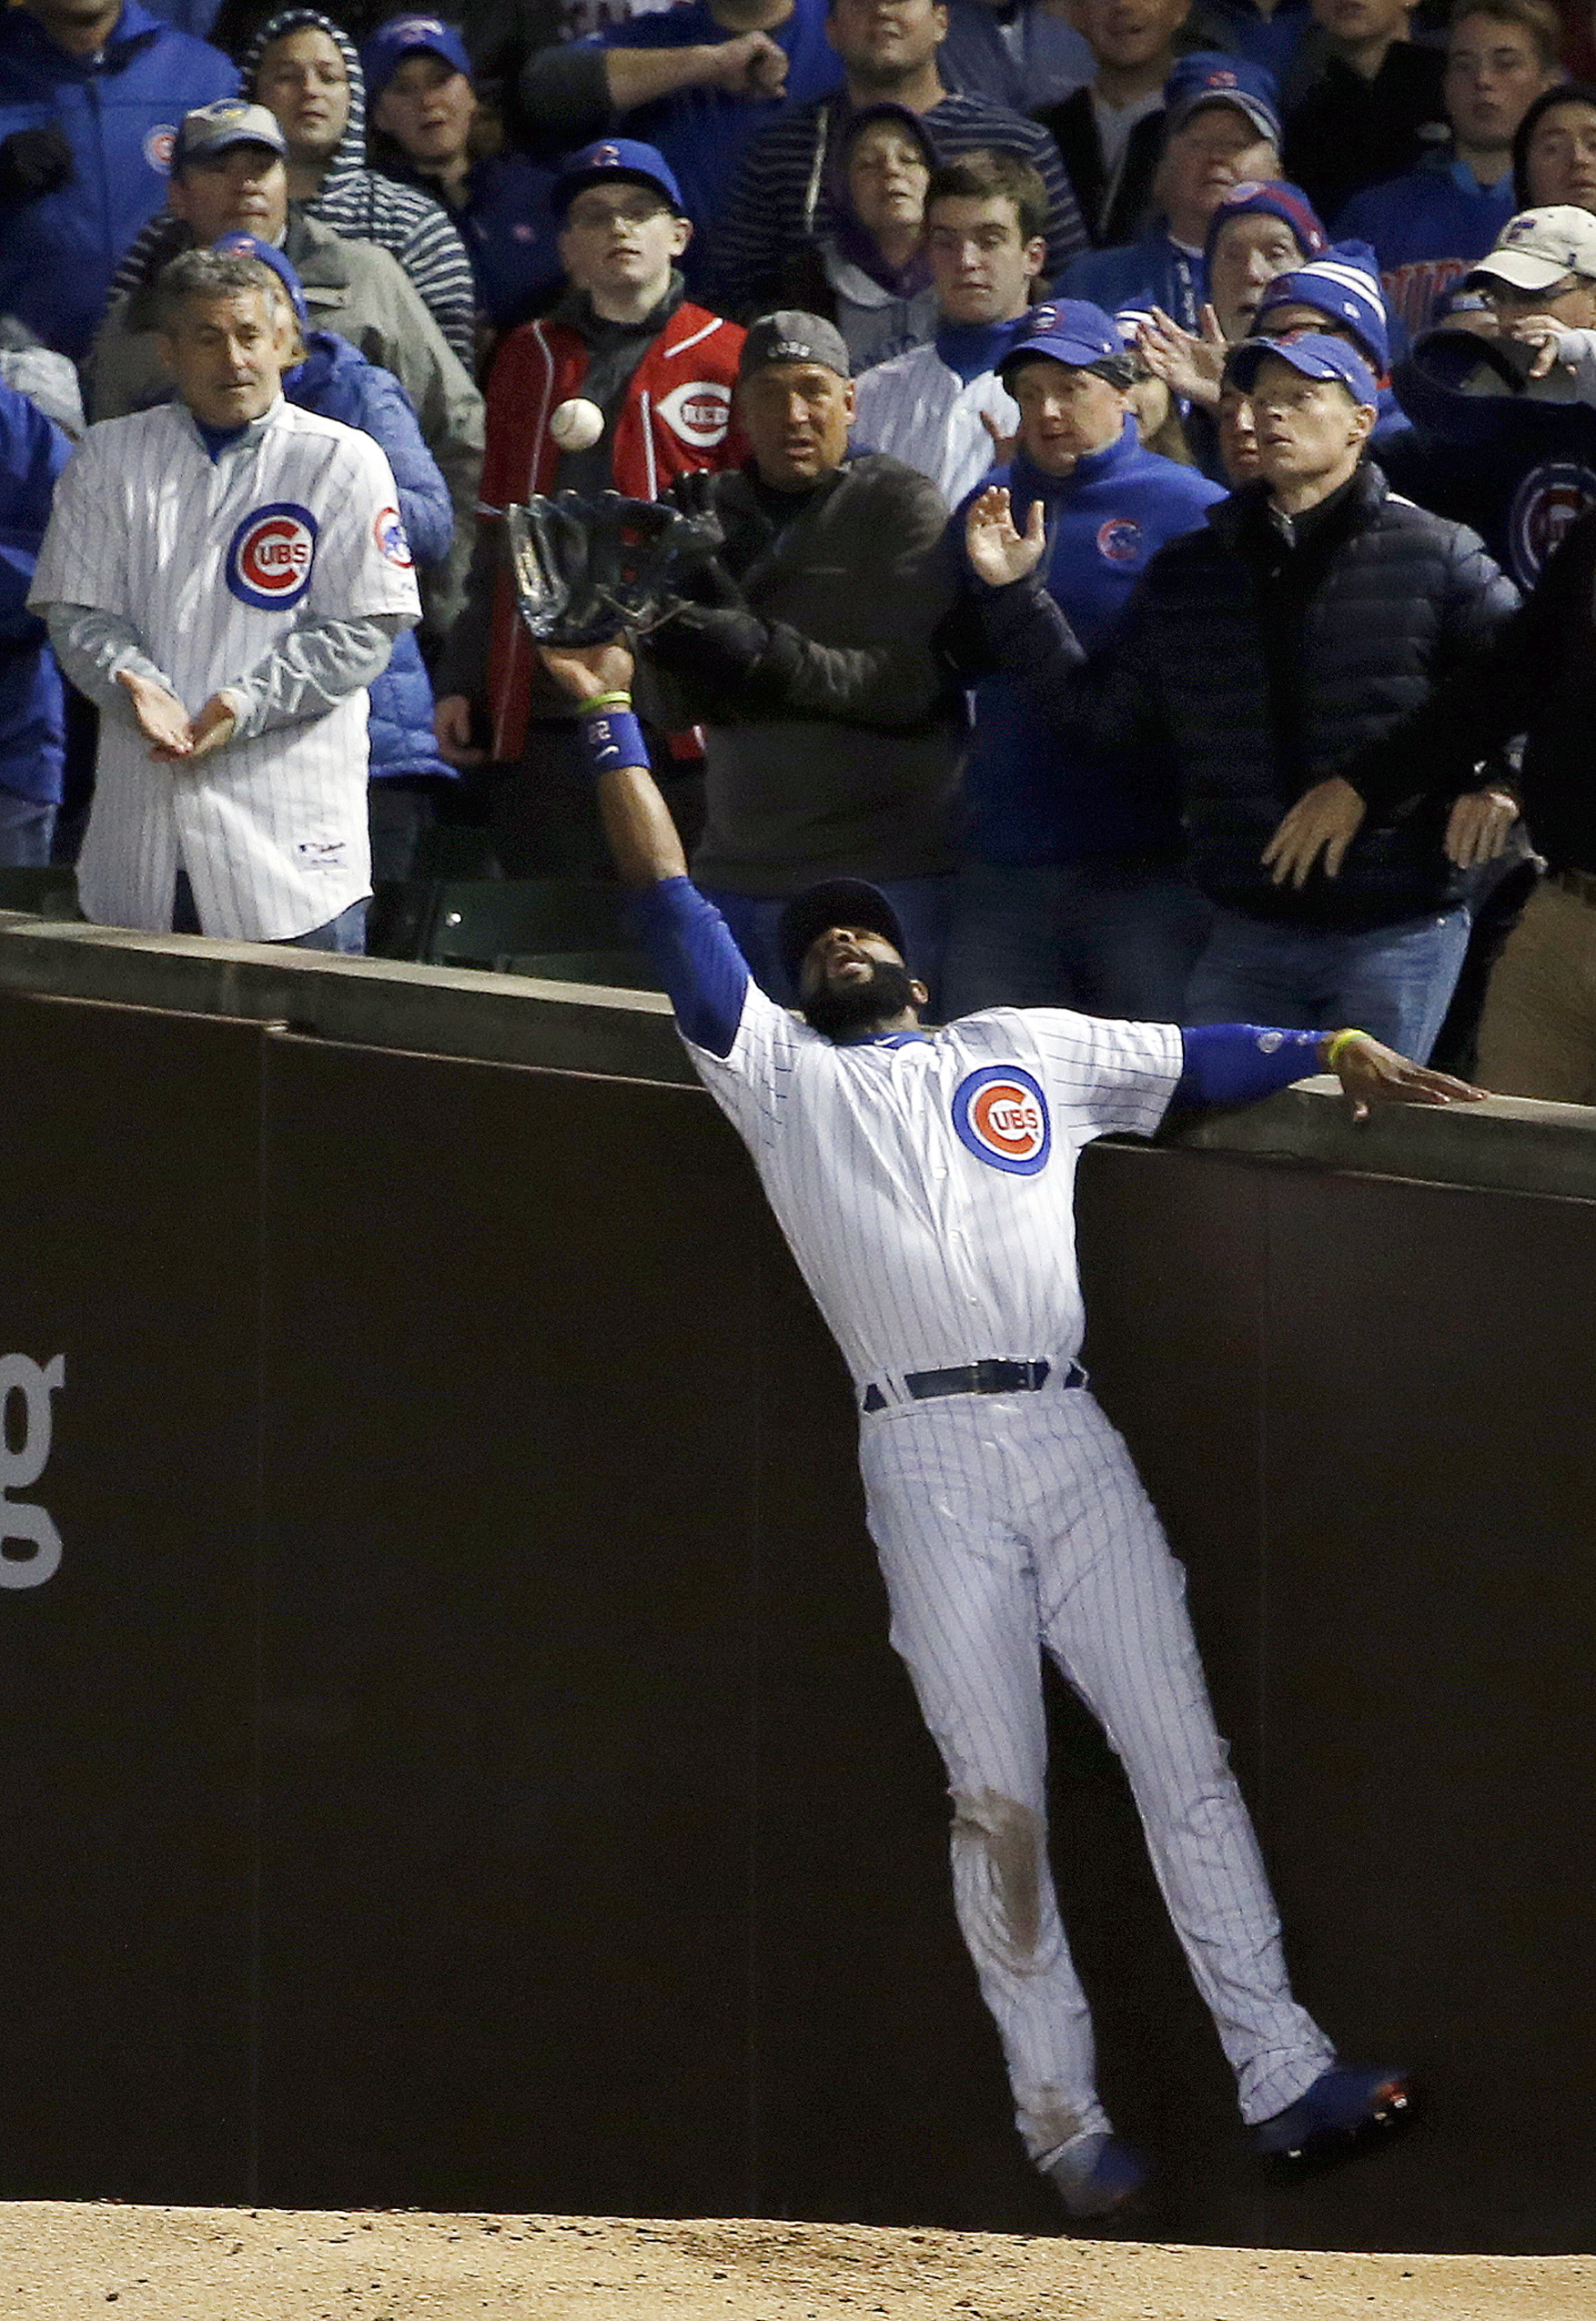 Chicago Cubs right fielder Jason Heyward catches a foul ball hit by Cleveland Indians' Trevor Bauer during the third inning of Game 5 of the Major League Baseball World Series Sunday, Oct. 30, 2016, in Chicago. (AP Photo/Nam Y. Huh)